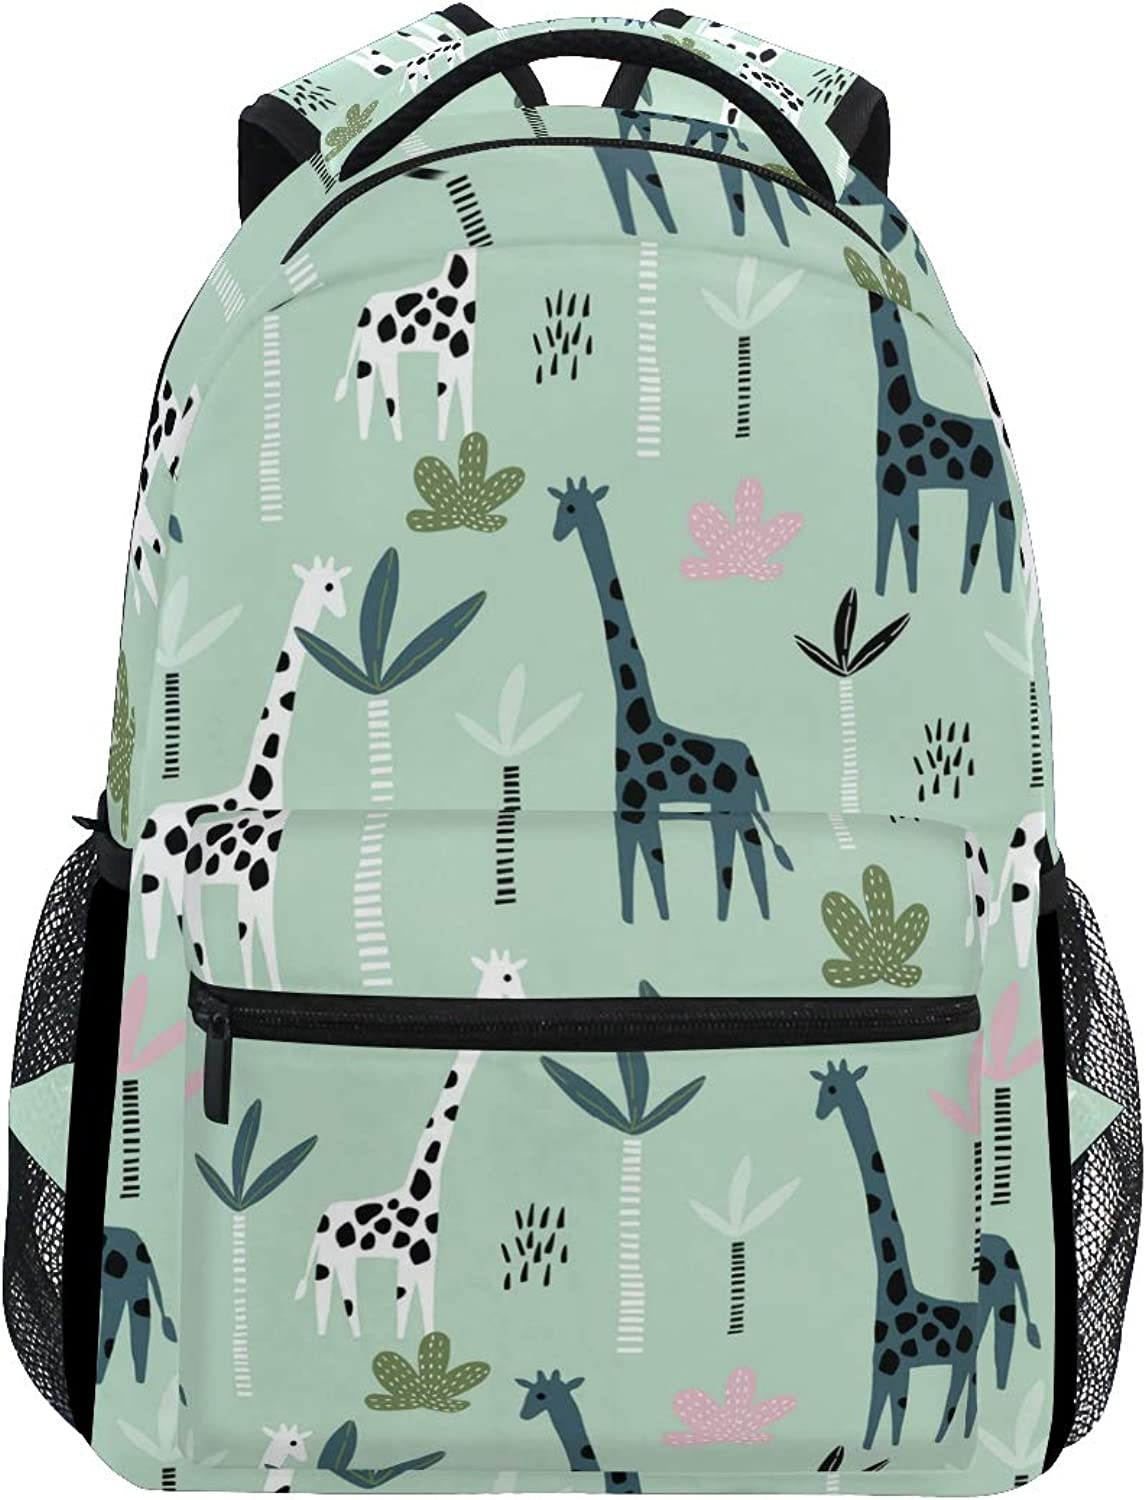 bluee Fresh Giraffe Decorations Large Backpack Travel Outdoor Sports Laptop Backpack for Women & Men College School Water Resistant